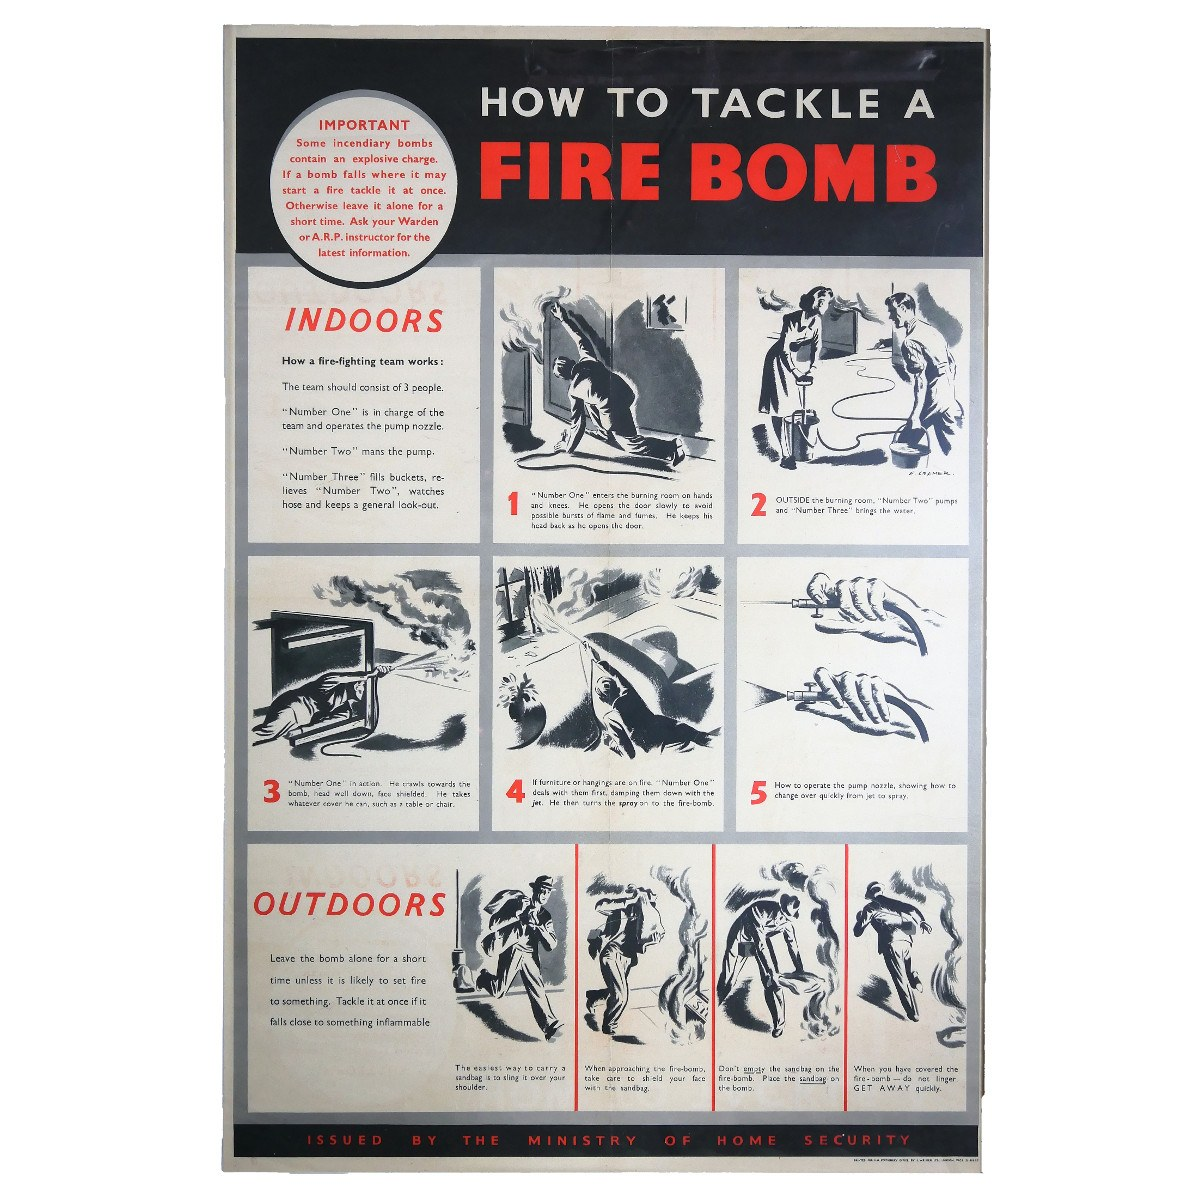 How to Tackle a Fire Bomb